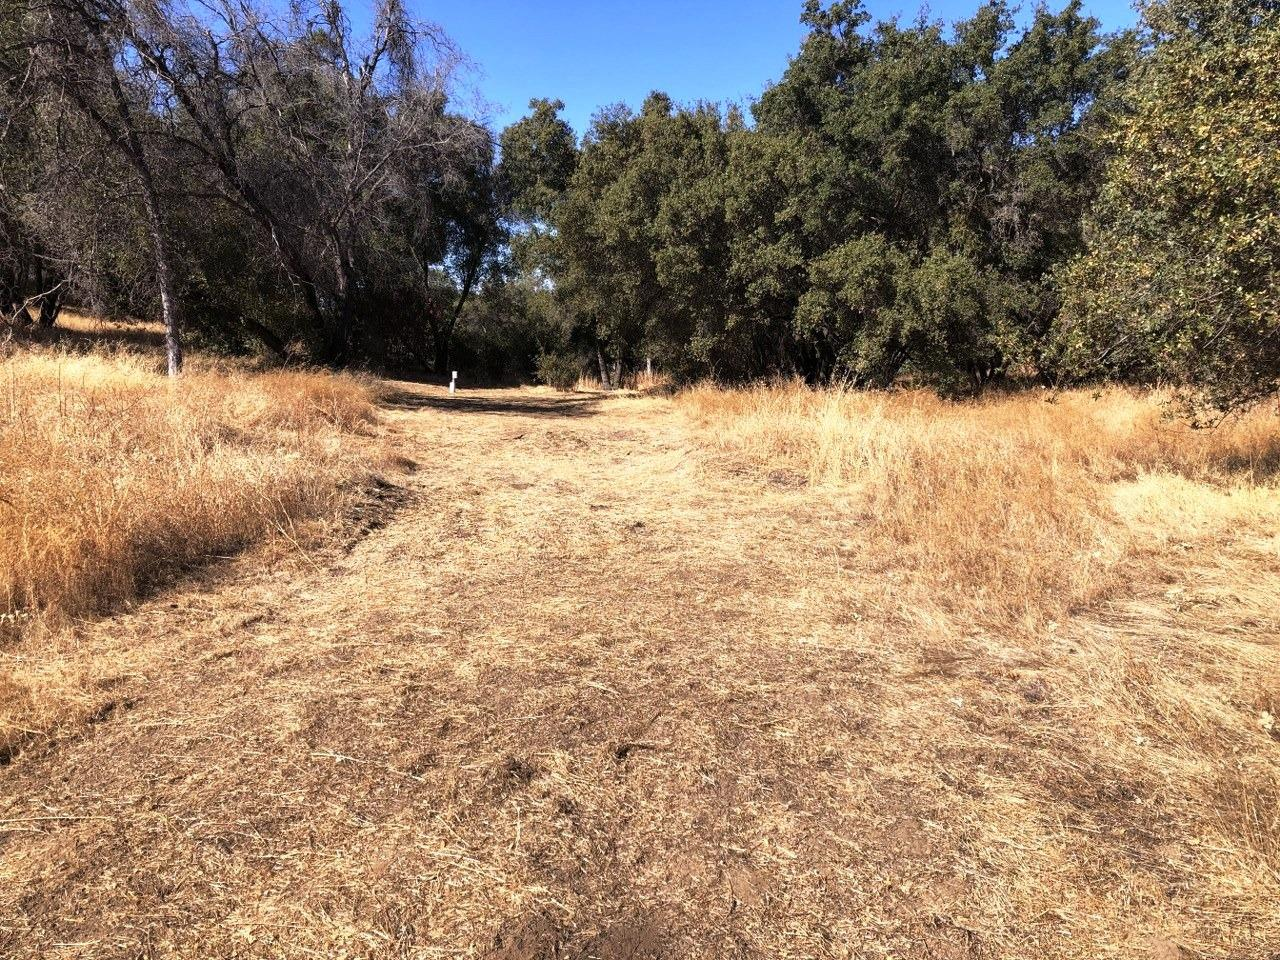 Looking for a great property to build your dream home?  Look no further!  This 3.97+/- acre parcel is in a great neighborhood with a private well with 2HP motor at well pump, septic and power right at the property.  Just bring your house plans and get ready to enjoy the peaceful views and large trees!